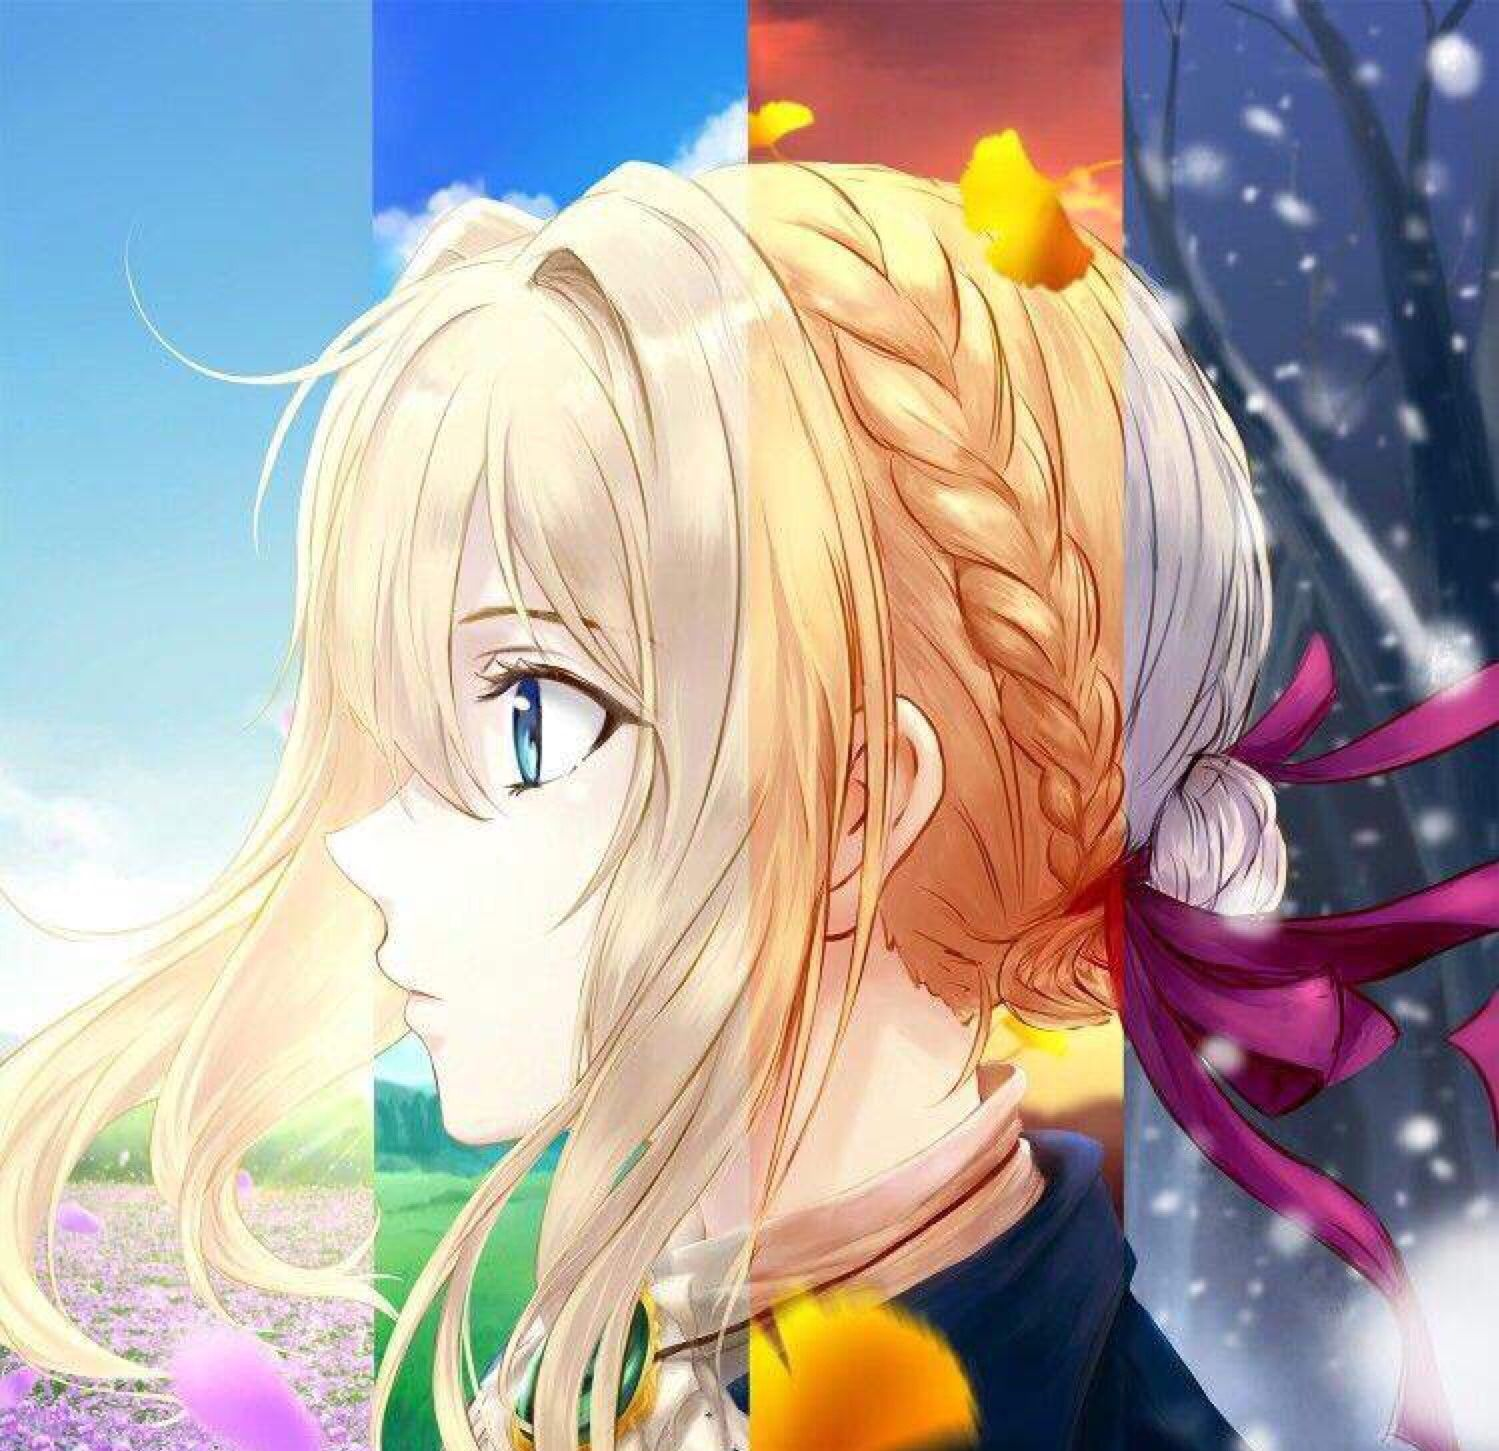 Pin by Nicole on uwu Violet evergarden anime, Violet